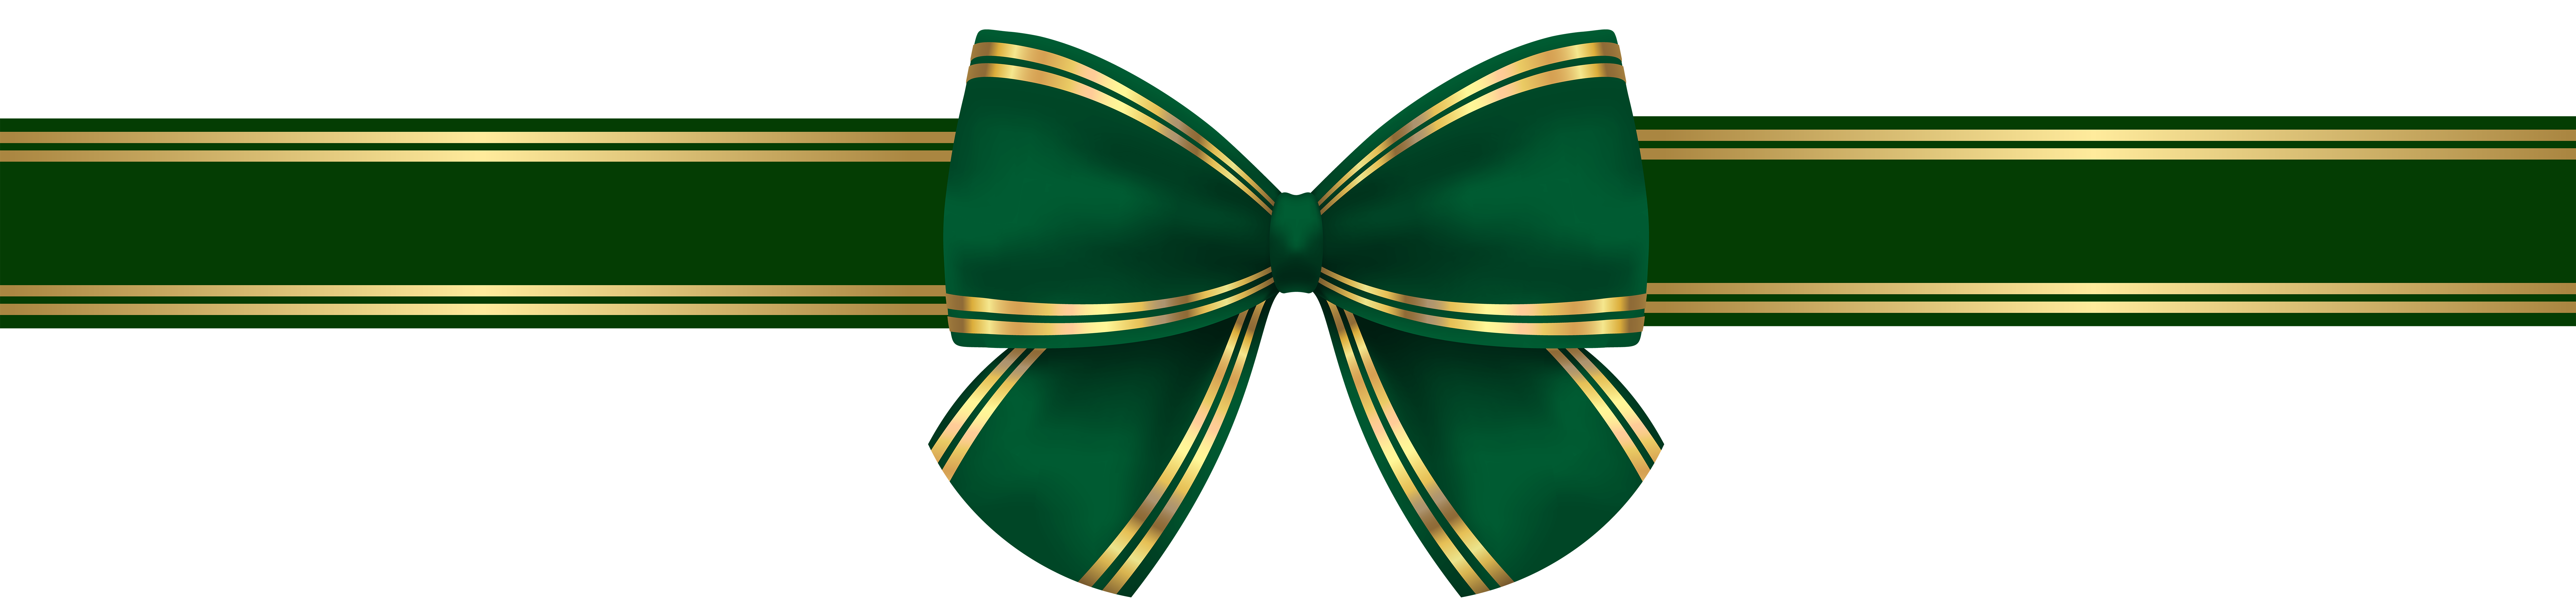 Bow Svg Cricut Bow Green Bow Svg Bow Png Bow Vector Etsy Bow Vector Green Bows Bows